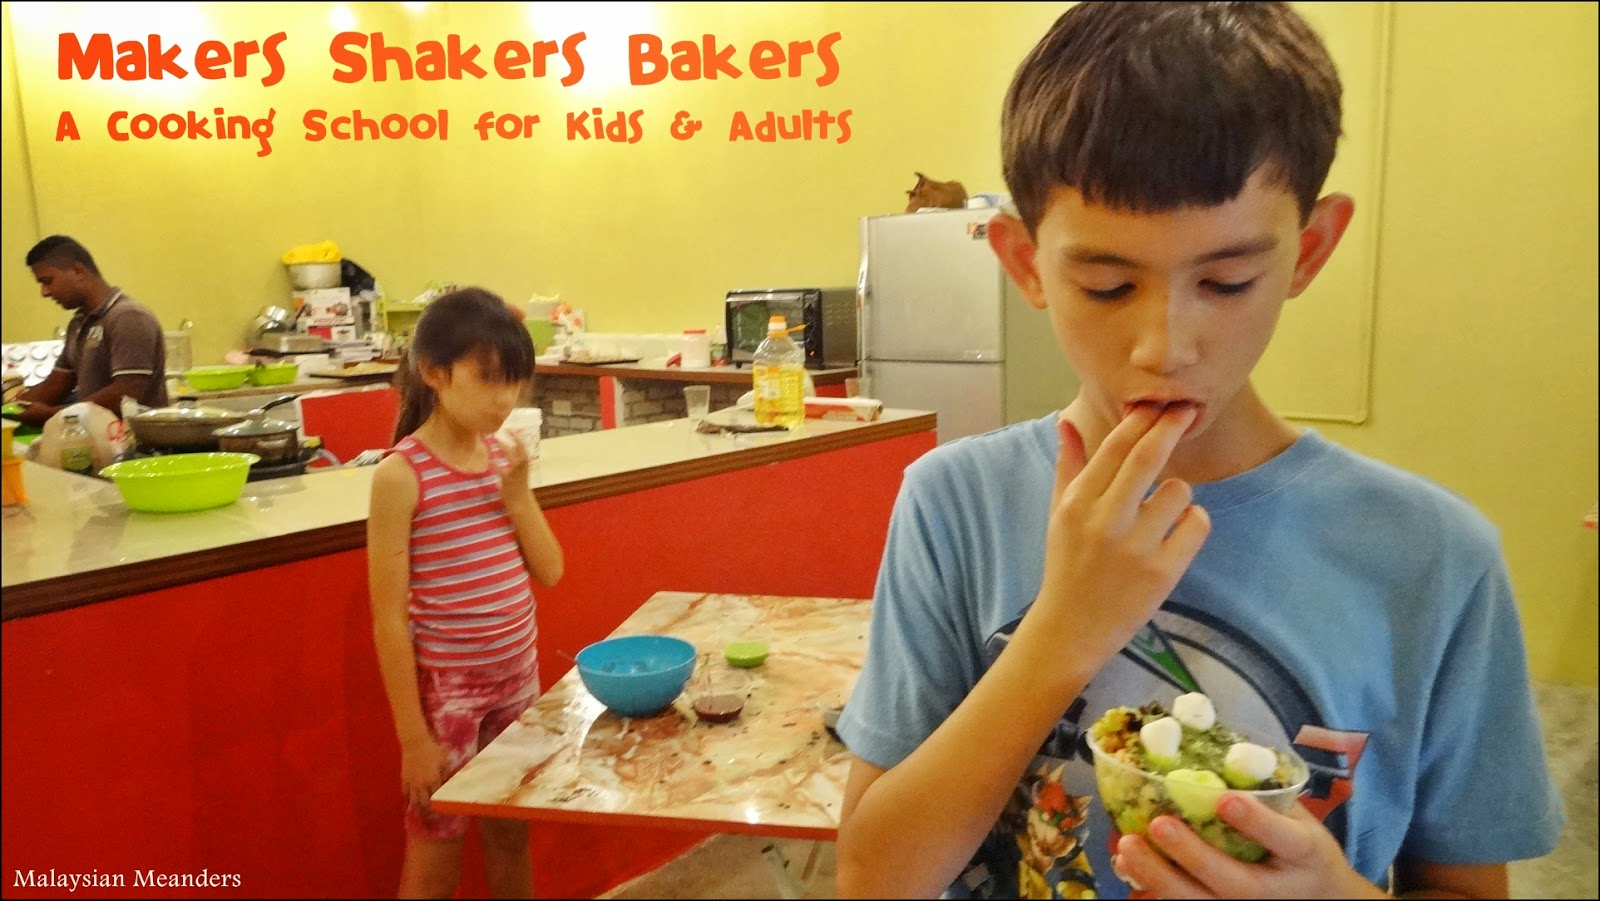 Makers Shakers Bakers